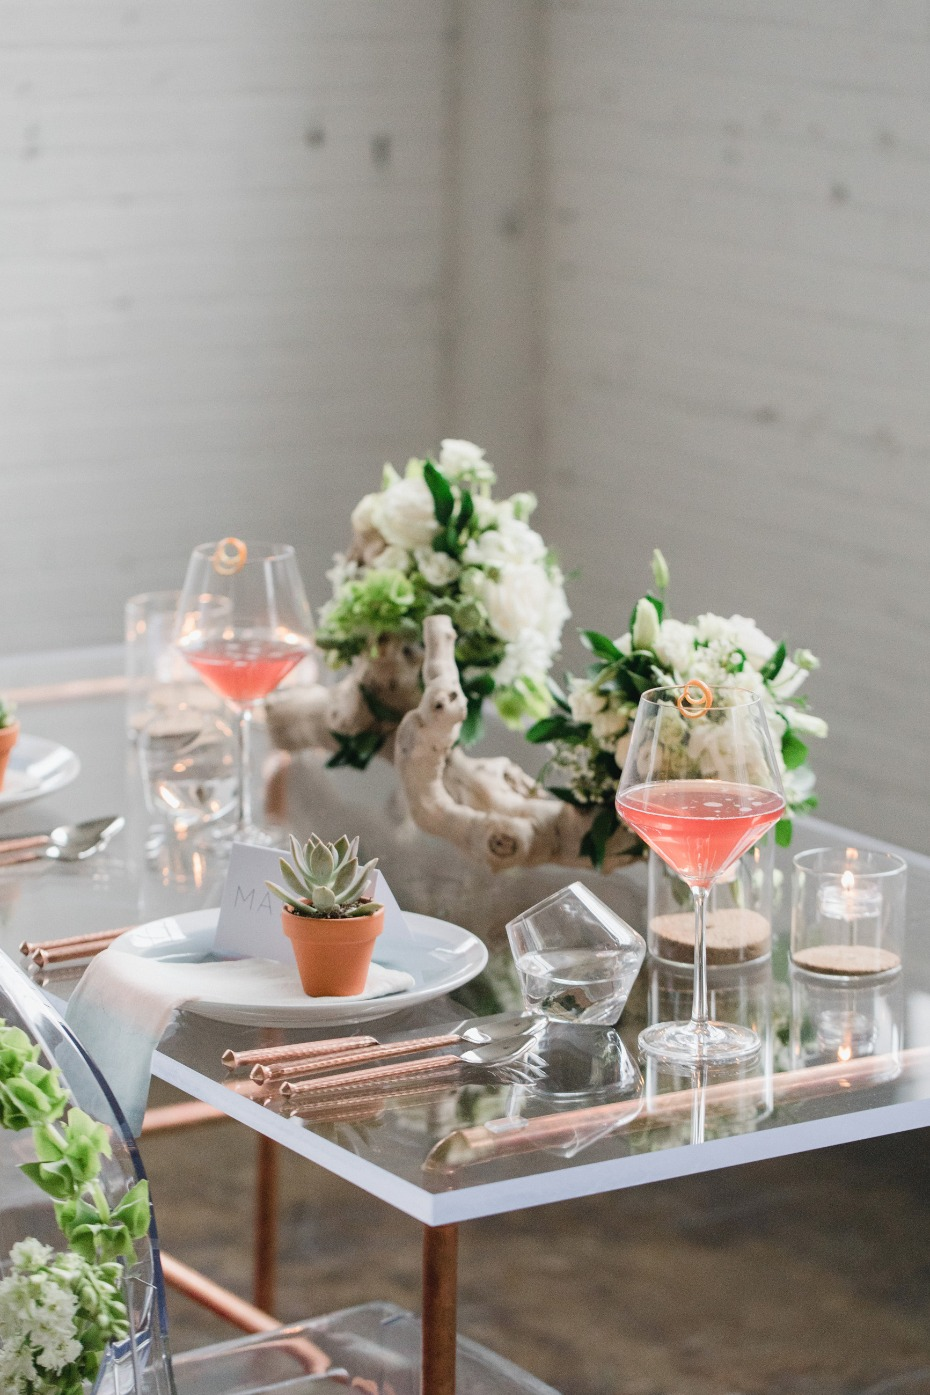 Modern sweetheart table for two